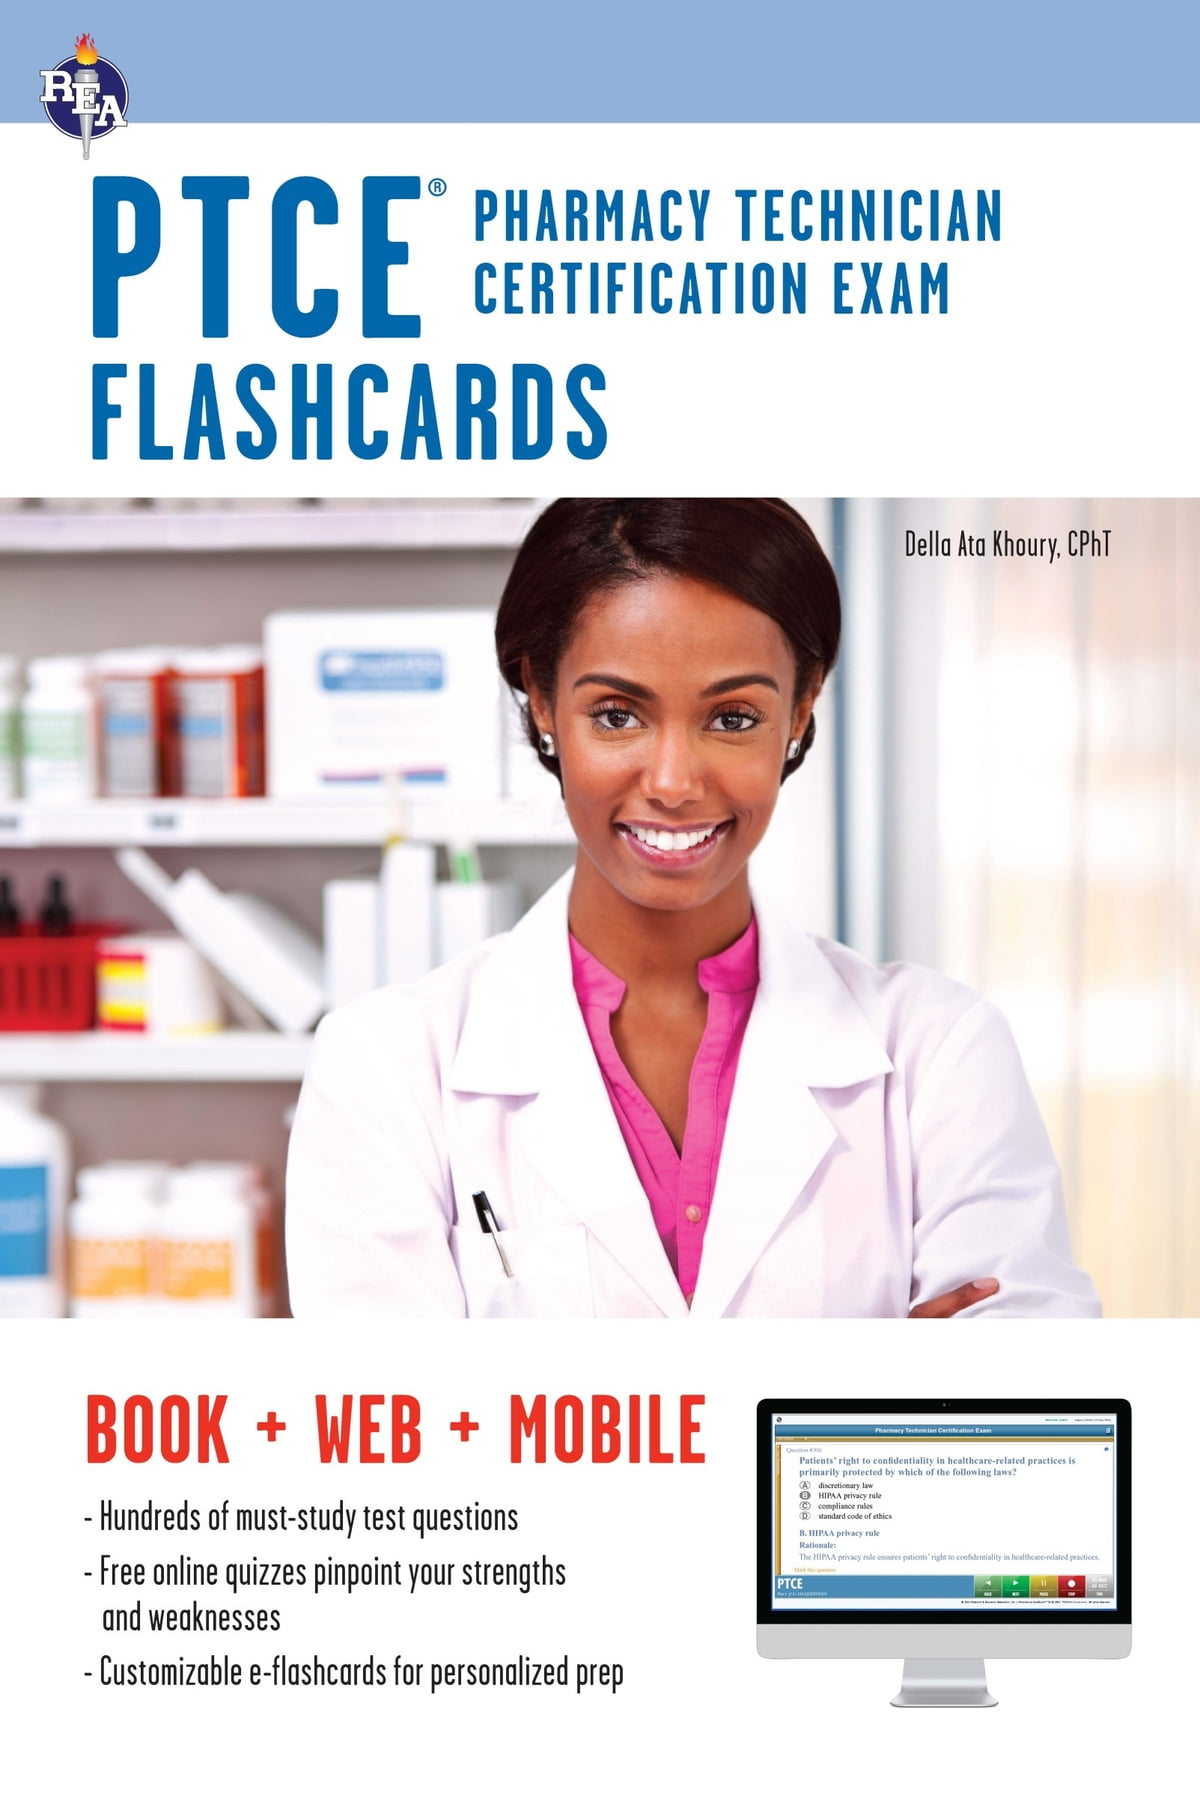 Ptce pharmacy technician certification exam flashcard book ptce pharmacy technician certification exam flashcard book online ebook by della ata khoury 9780738684451 rakuten kobo xflitez Choice Image